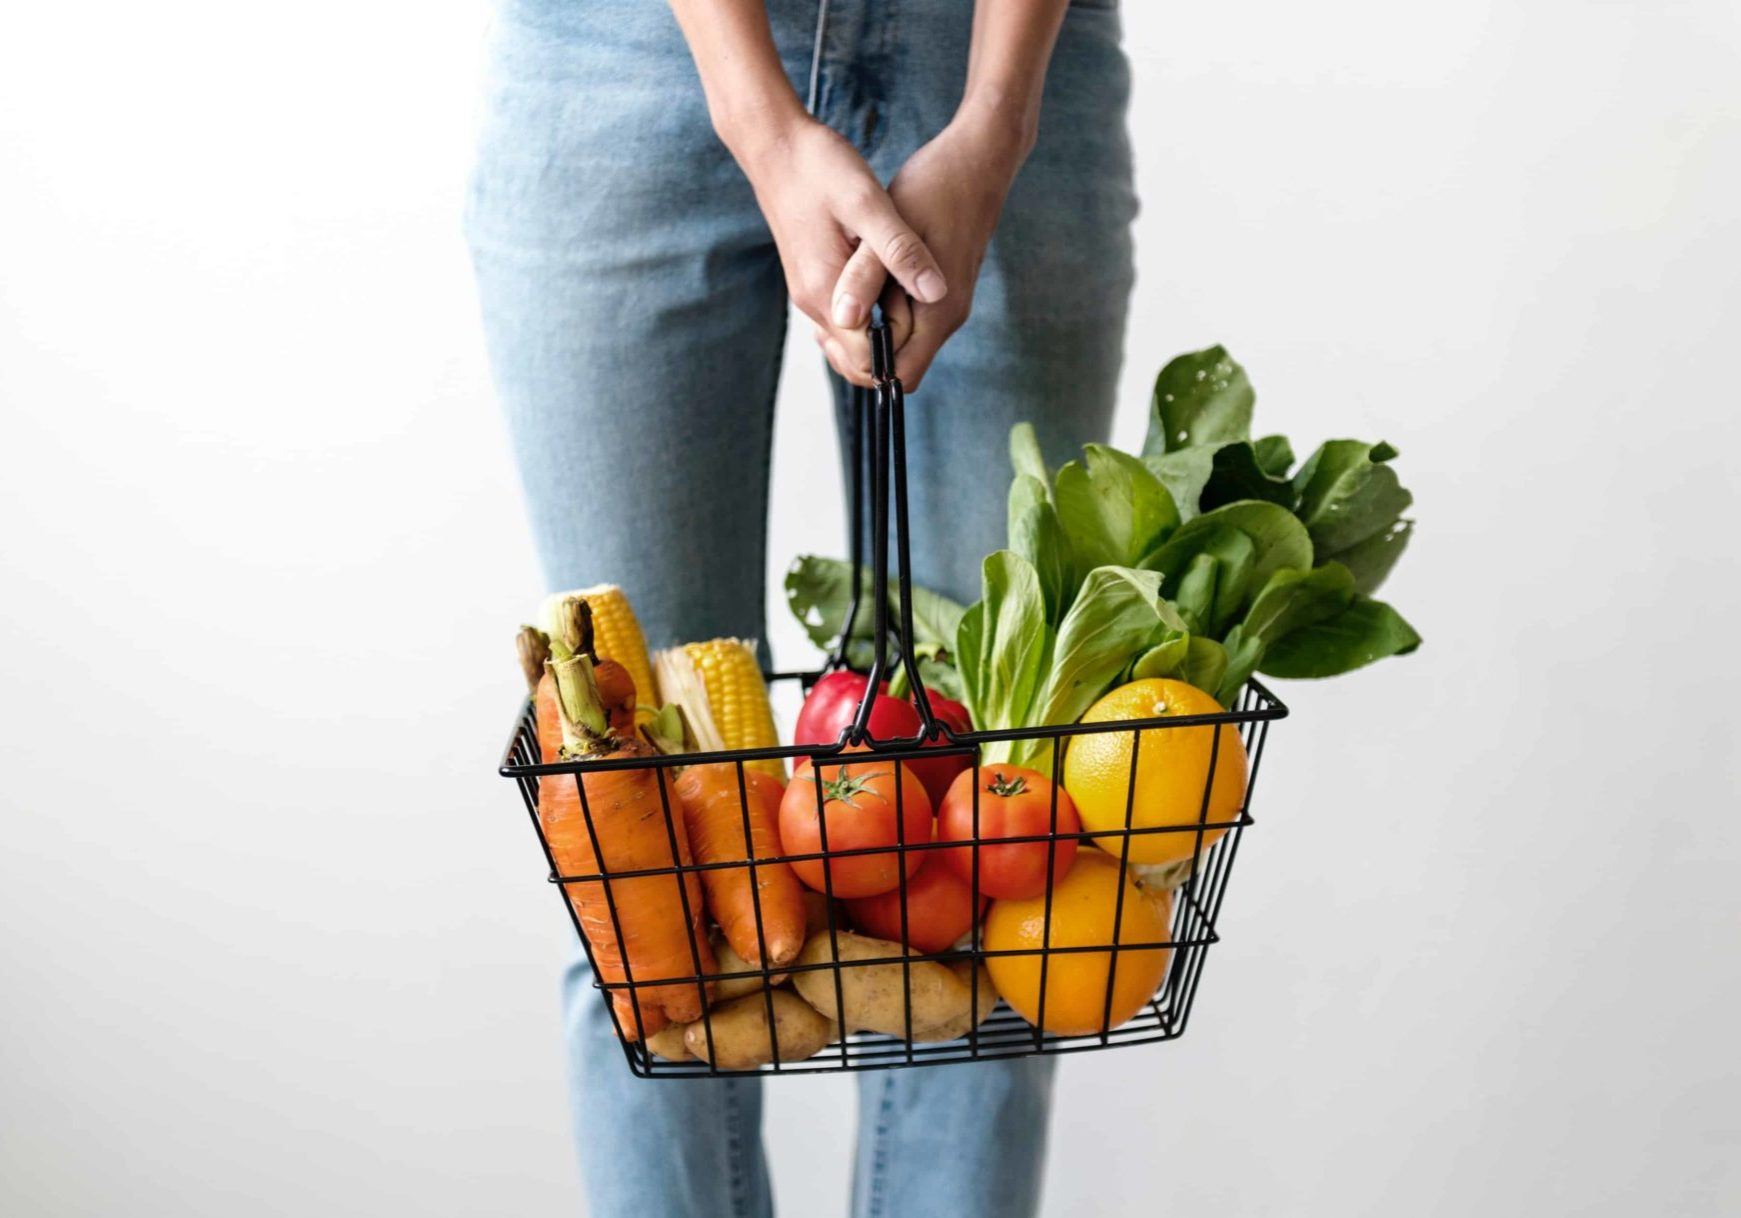 Person holding a basket full of vegetables